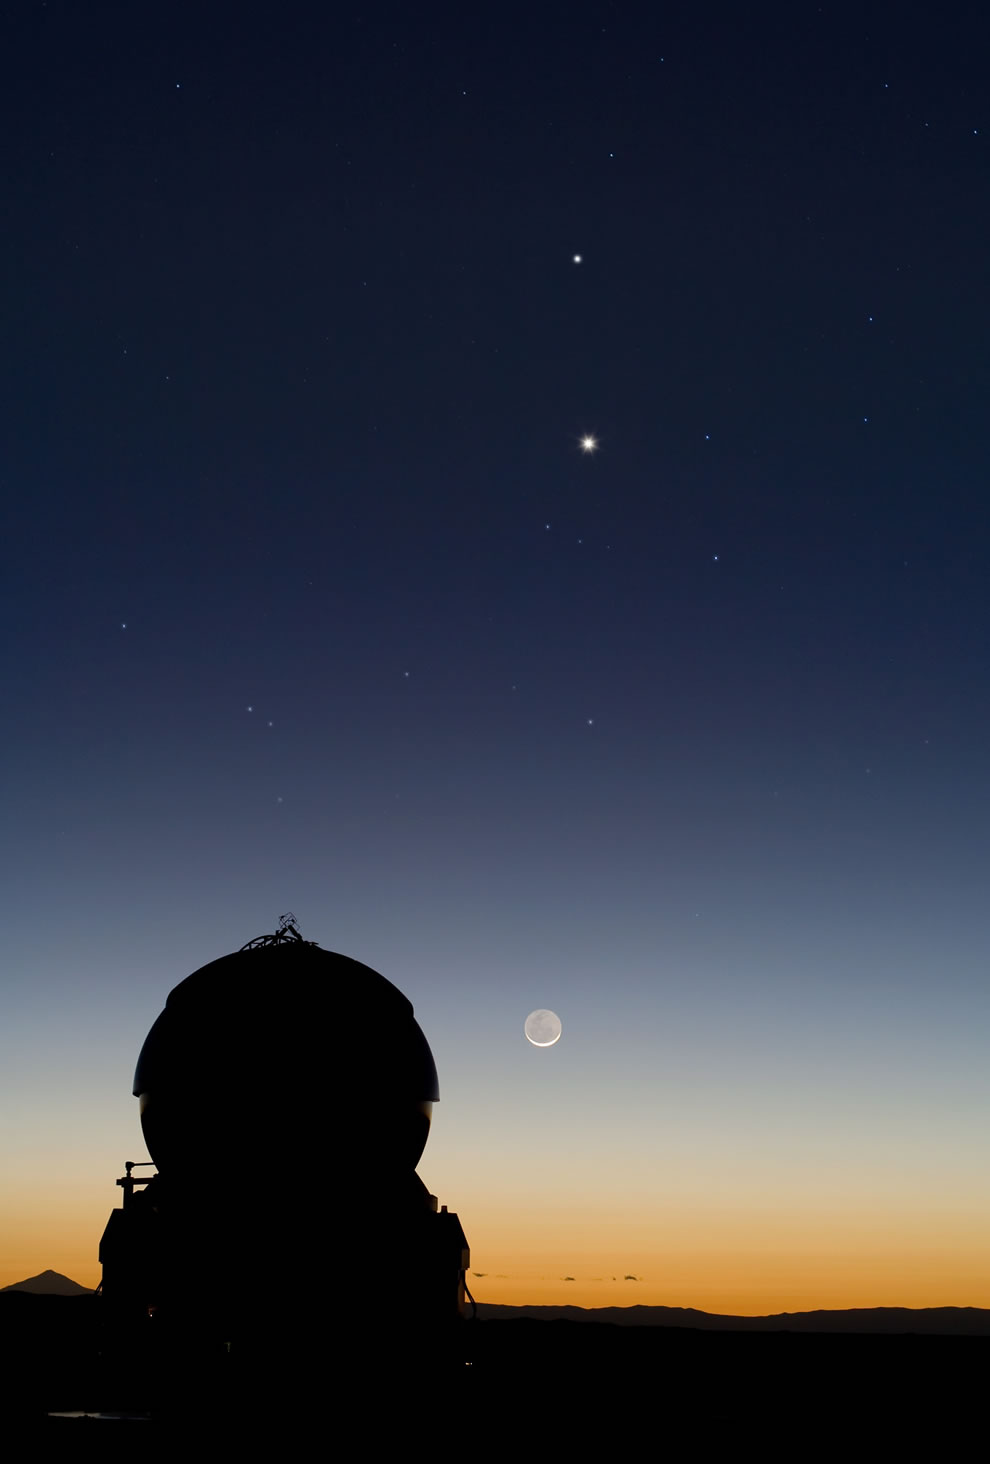 Celestial Tic-Tac-Toe - Mercury, Venus and the Moon Align